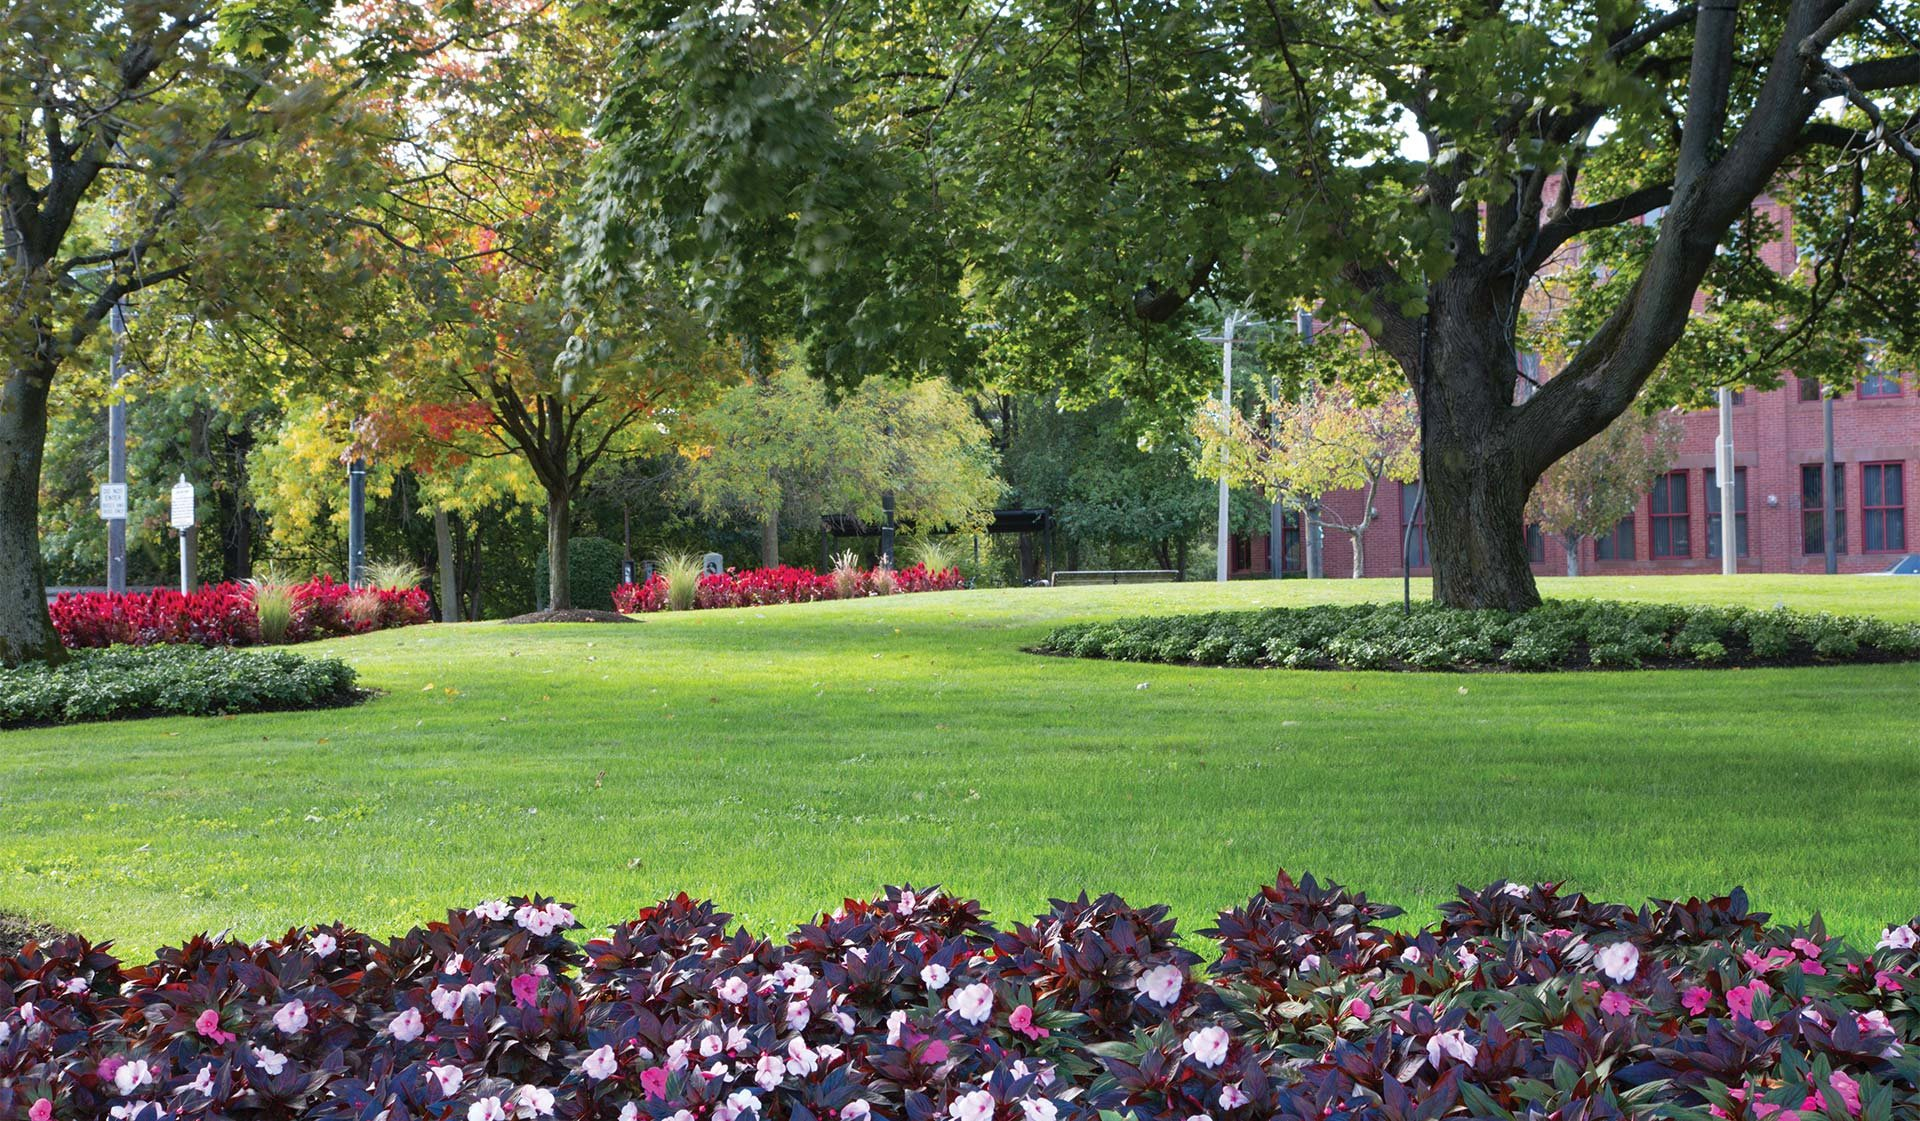 Charles Bank Apartments - image of a landscaped lawn with trees and flowers - Waterown, massachusetts